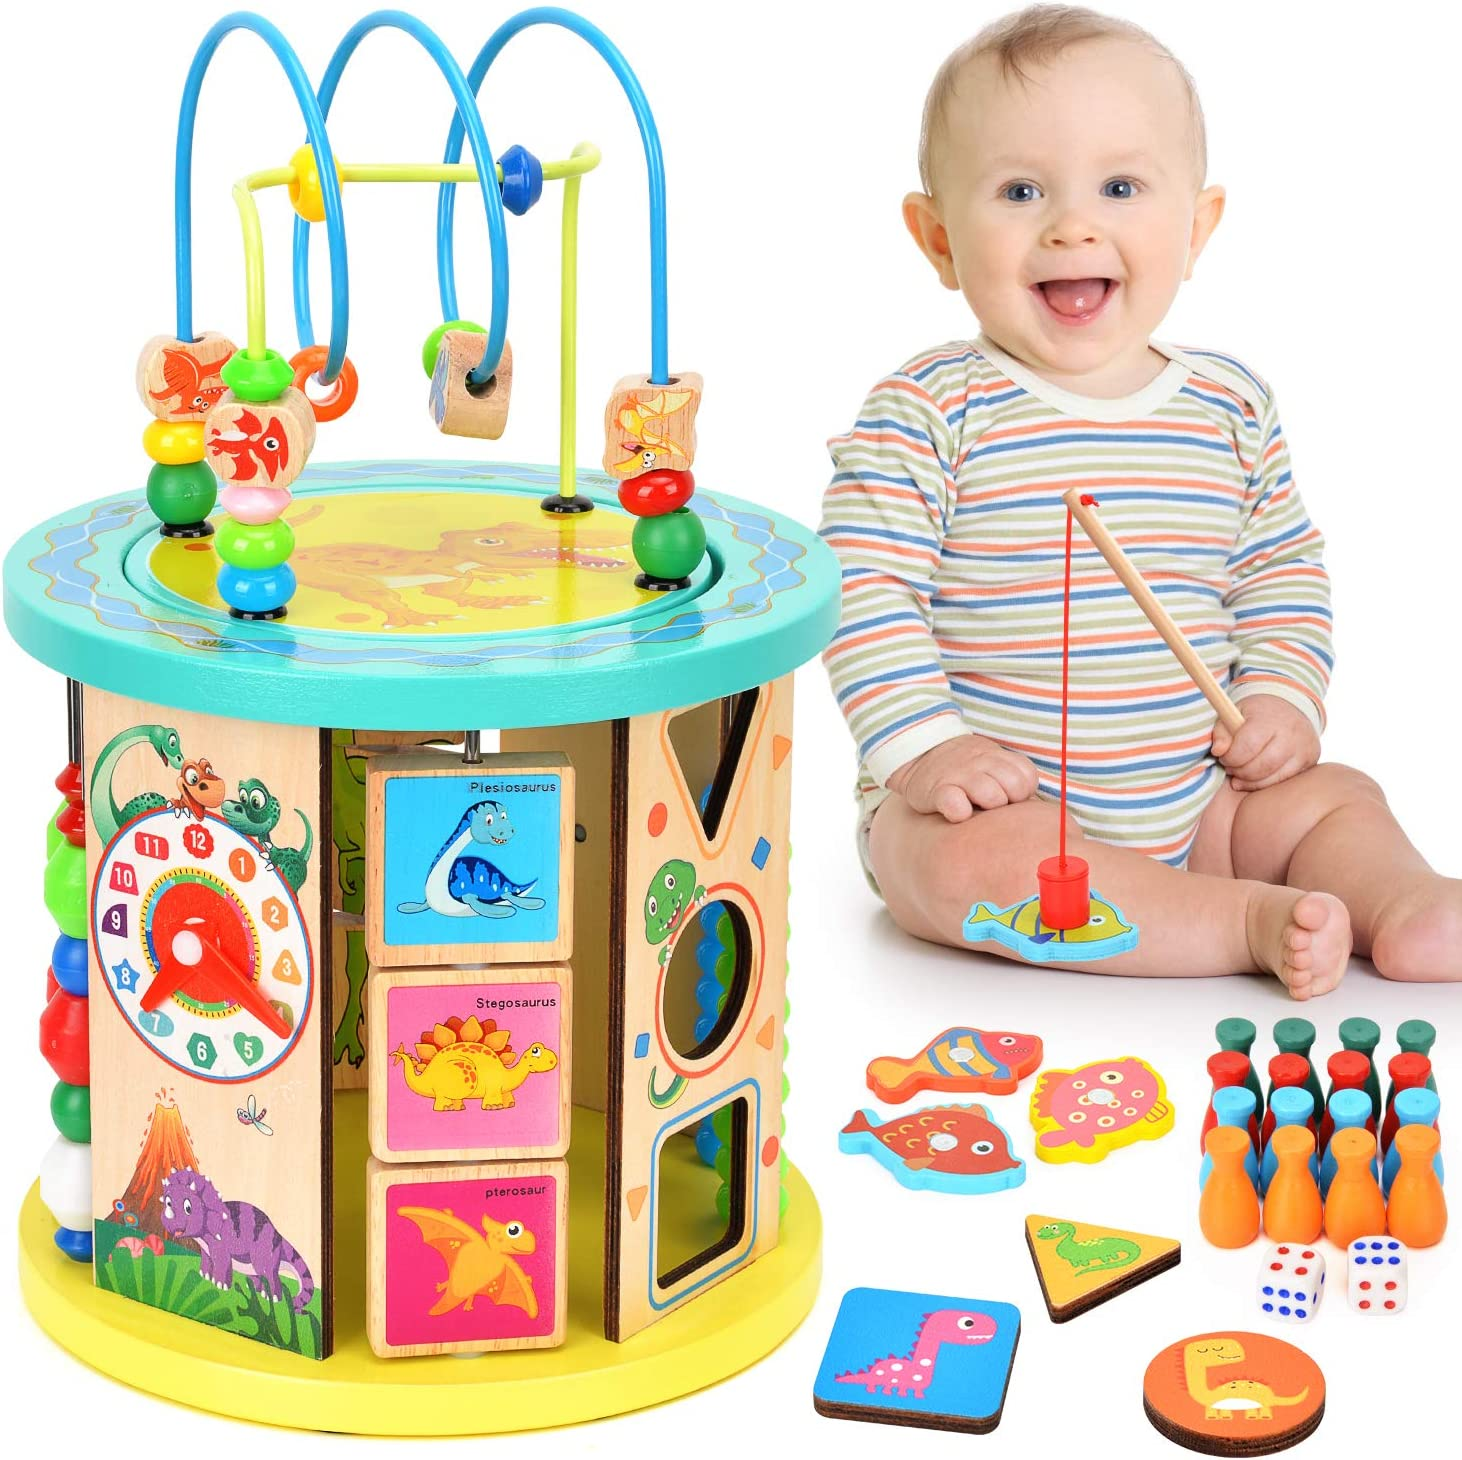 BATTOP 10 in 1 Multifunction Wooden Activity Cube Toys,Baby Wooden Bead Maze Educational Toys for 1 Year Old Boys & Girls Activity Center, Great Gift Toys for Kids Little Girls & Boys Age 1、2、3、4、5、6